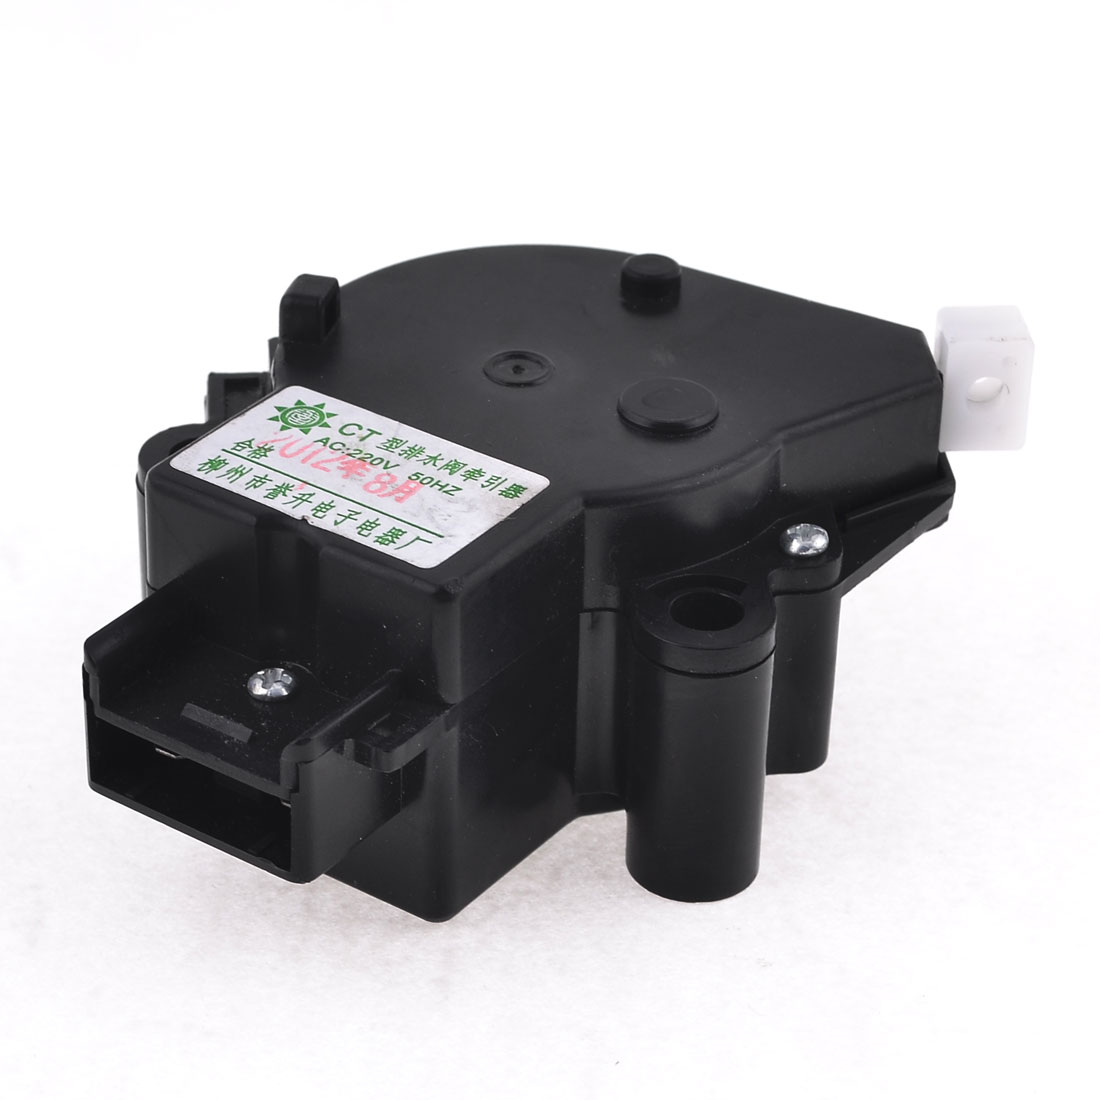 Black AC 220V 50Hz Drainage Valve Tractor for Little Swan Washing Machine